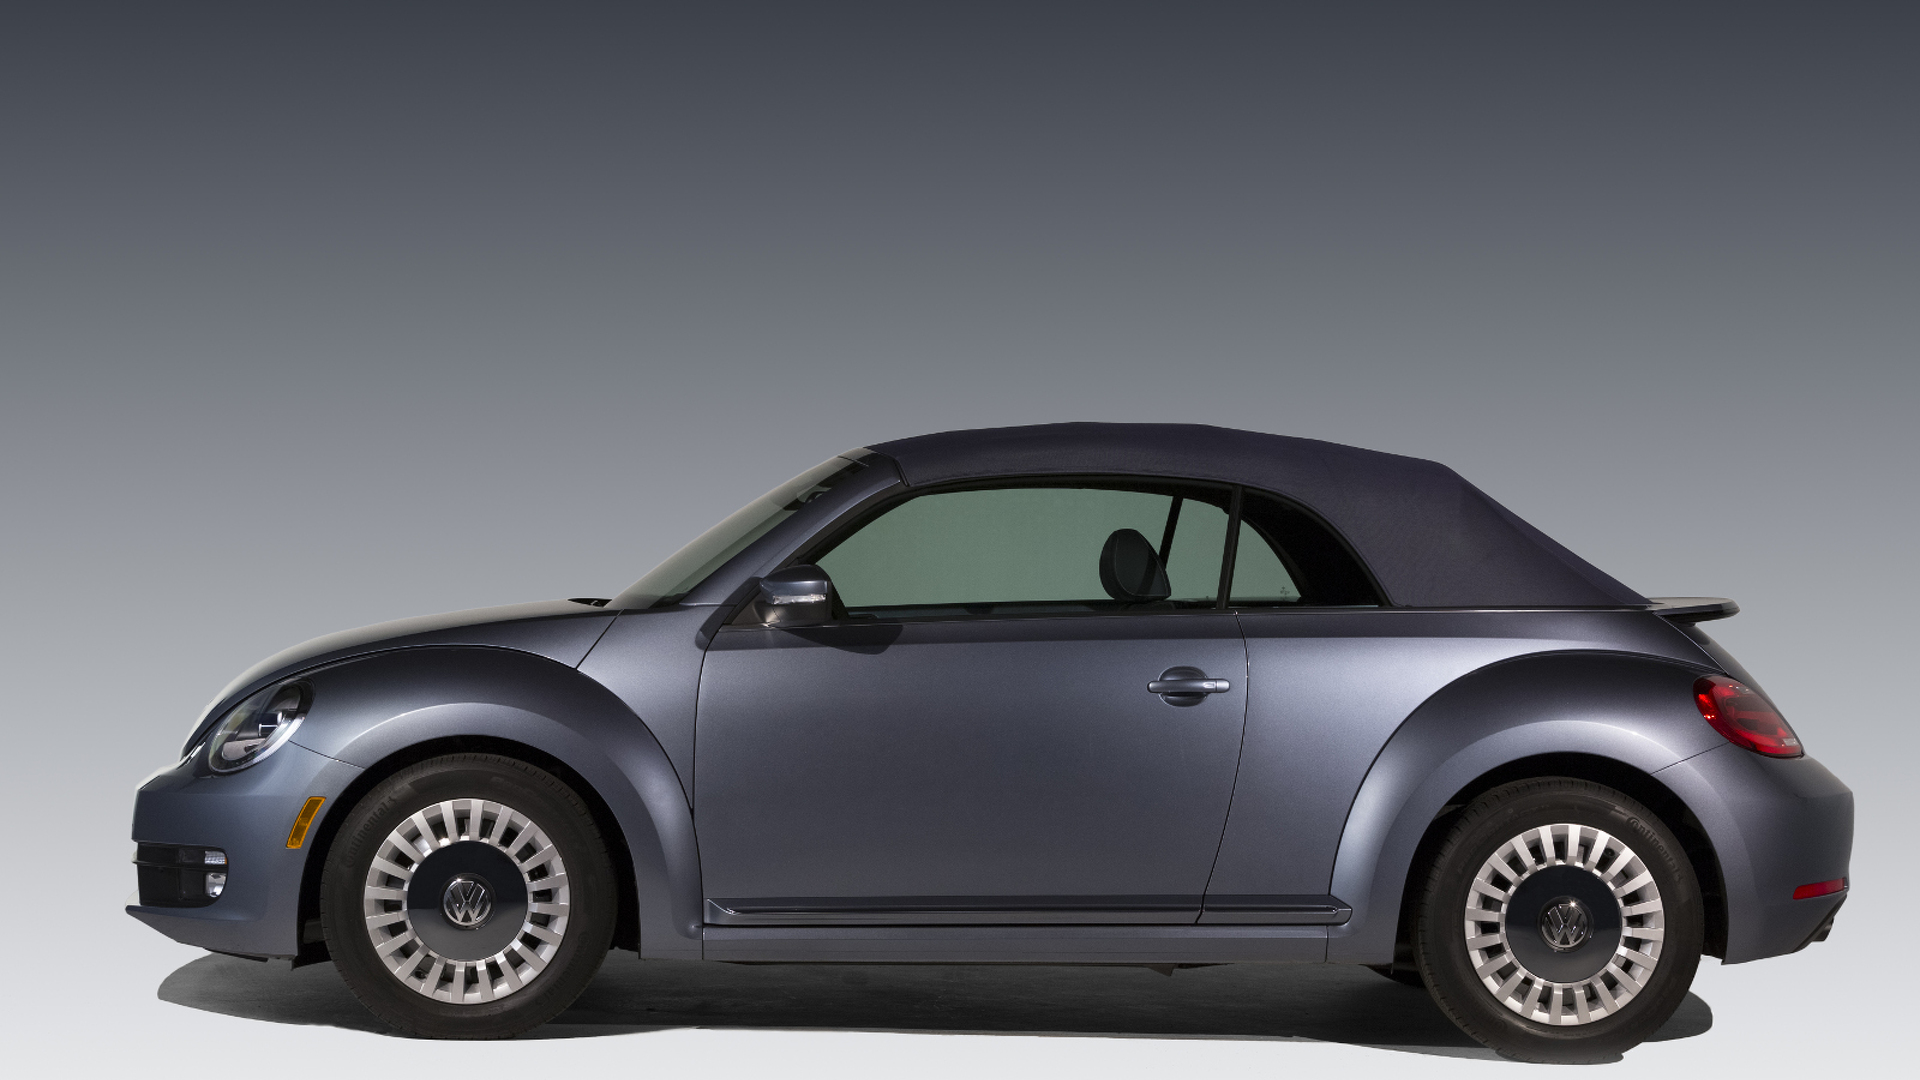 2018 Volkswagen New Beetle photo - 4